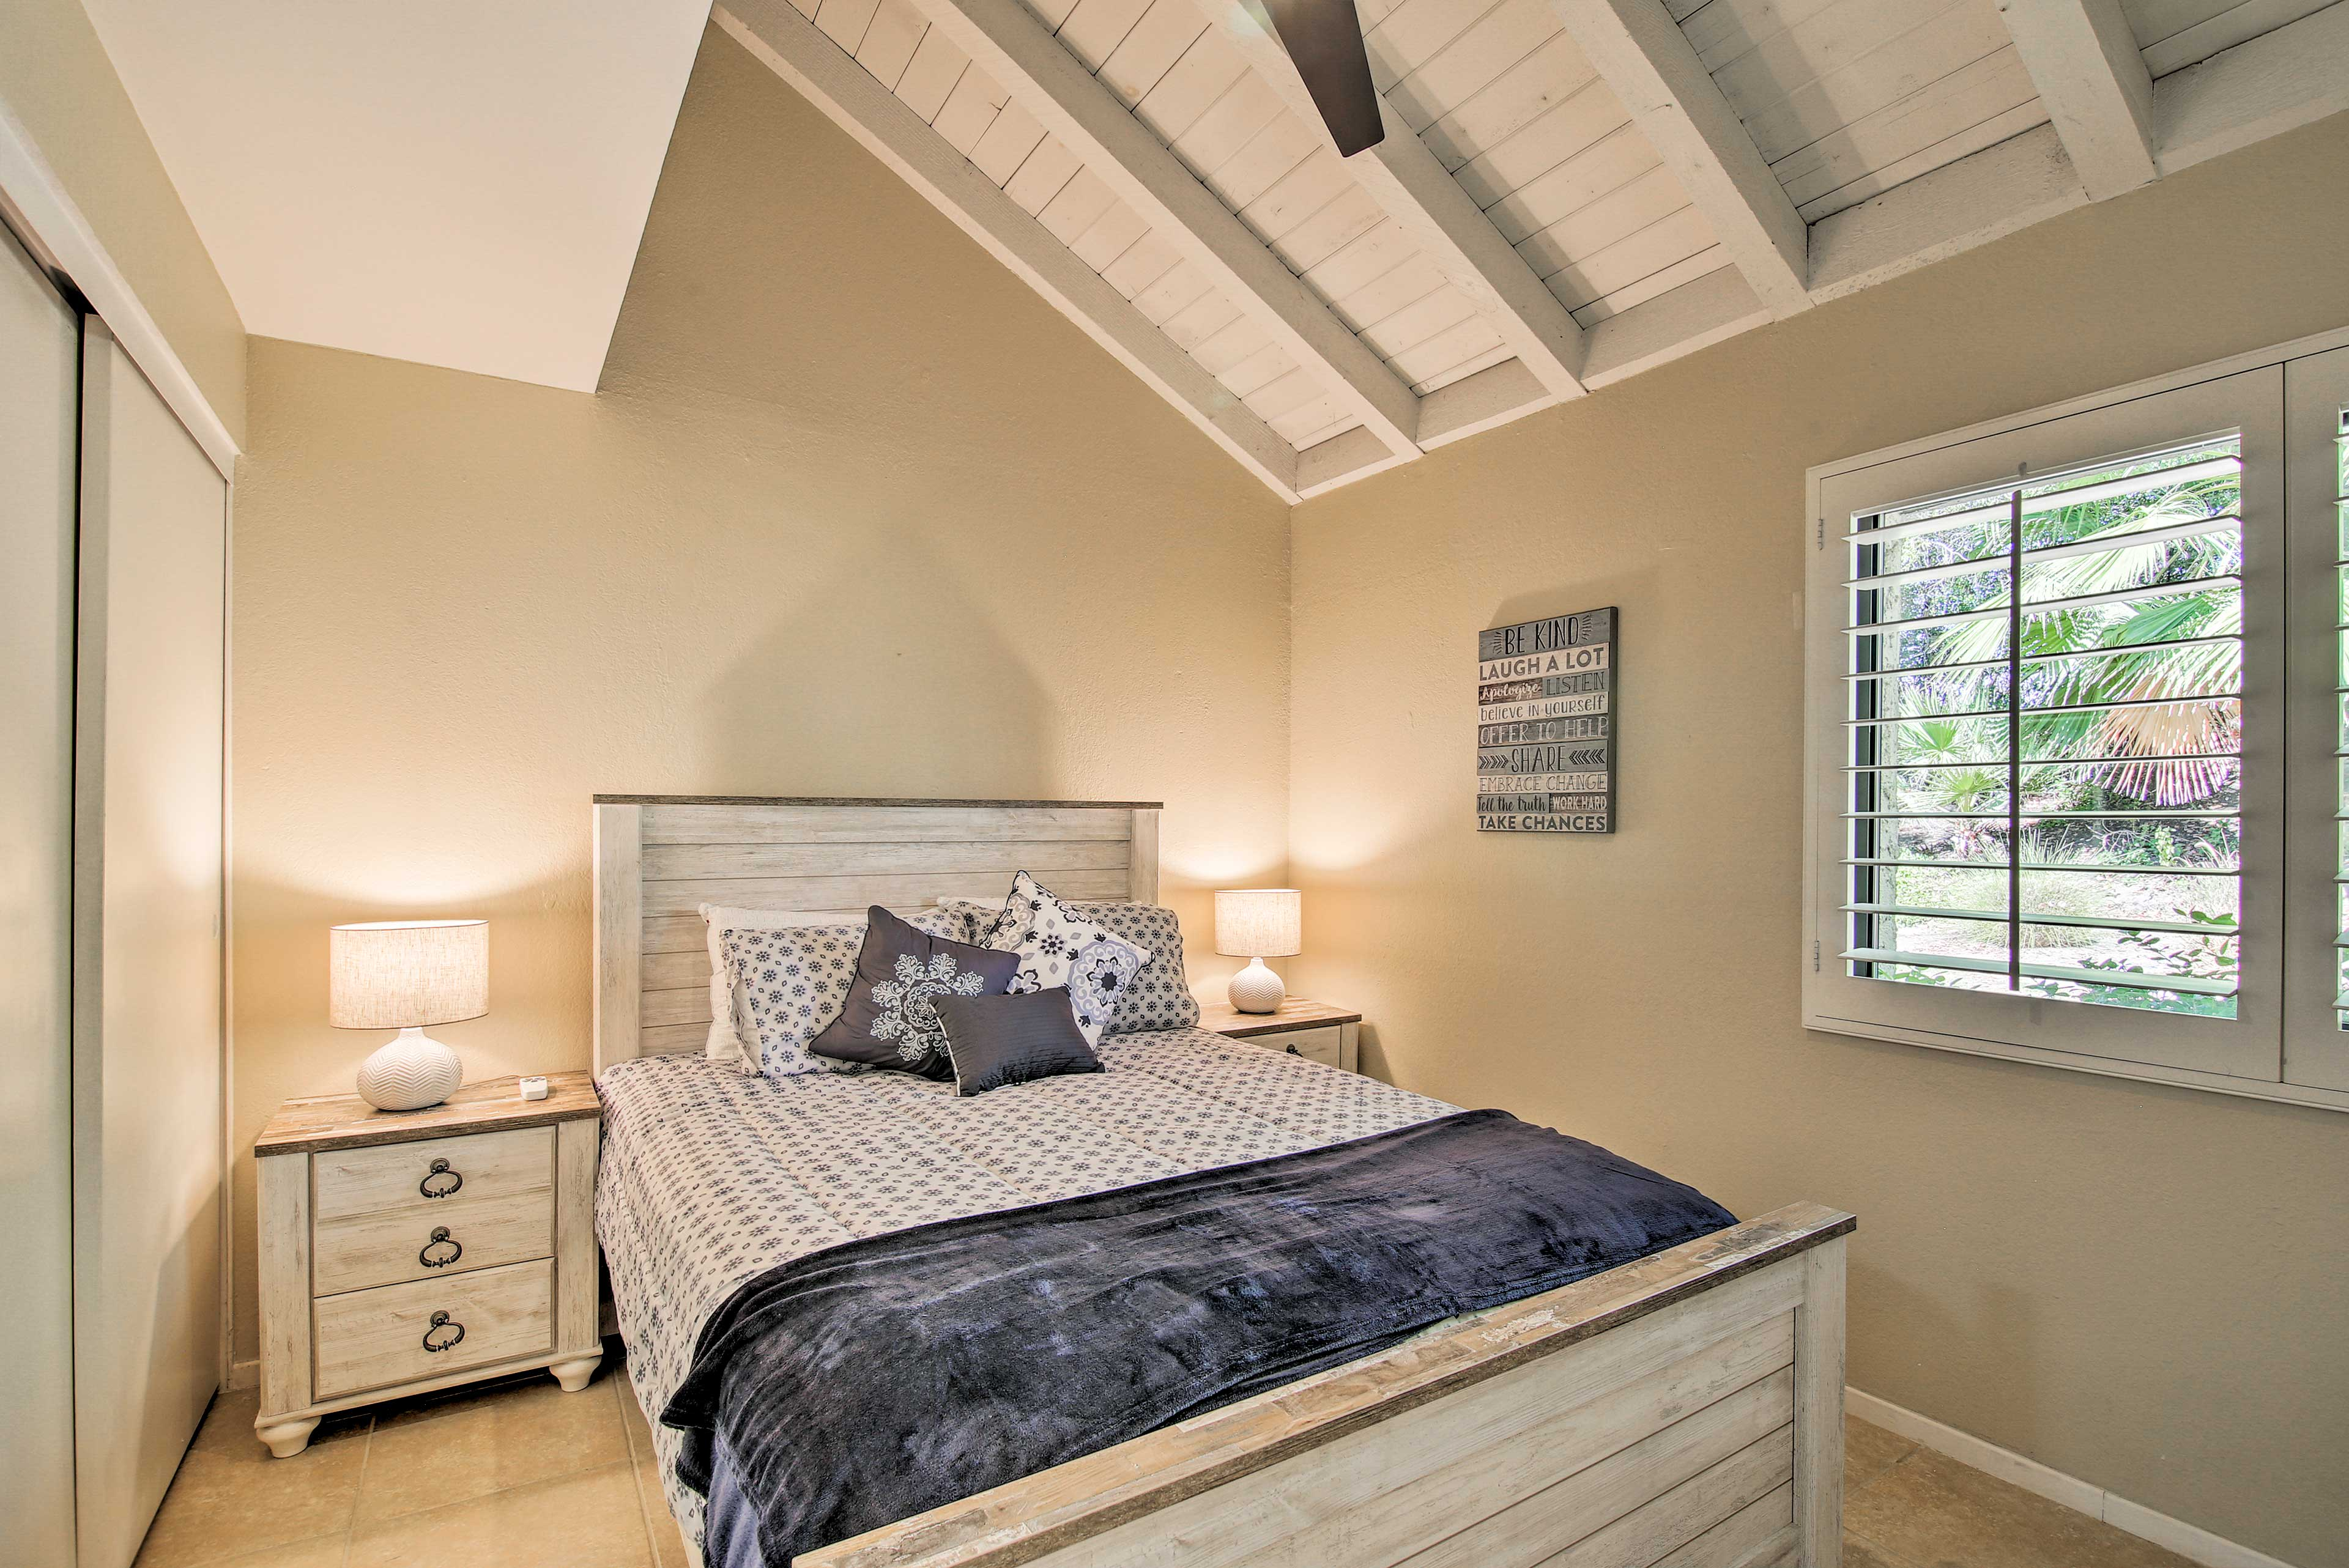 Slip into a deep slumber in this queen-sized bed.